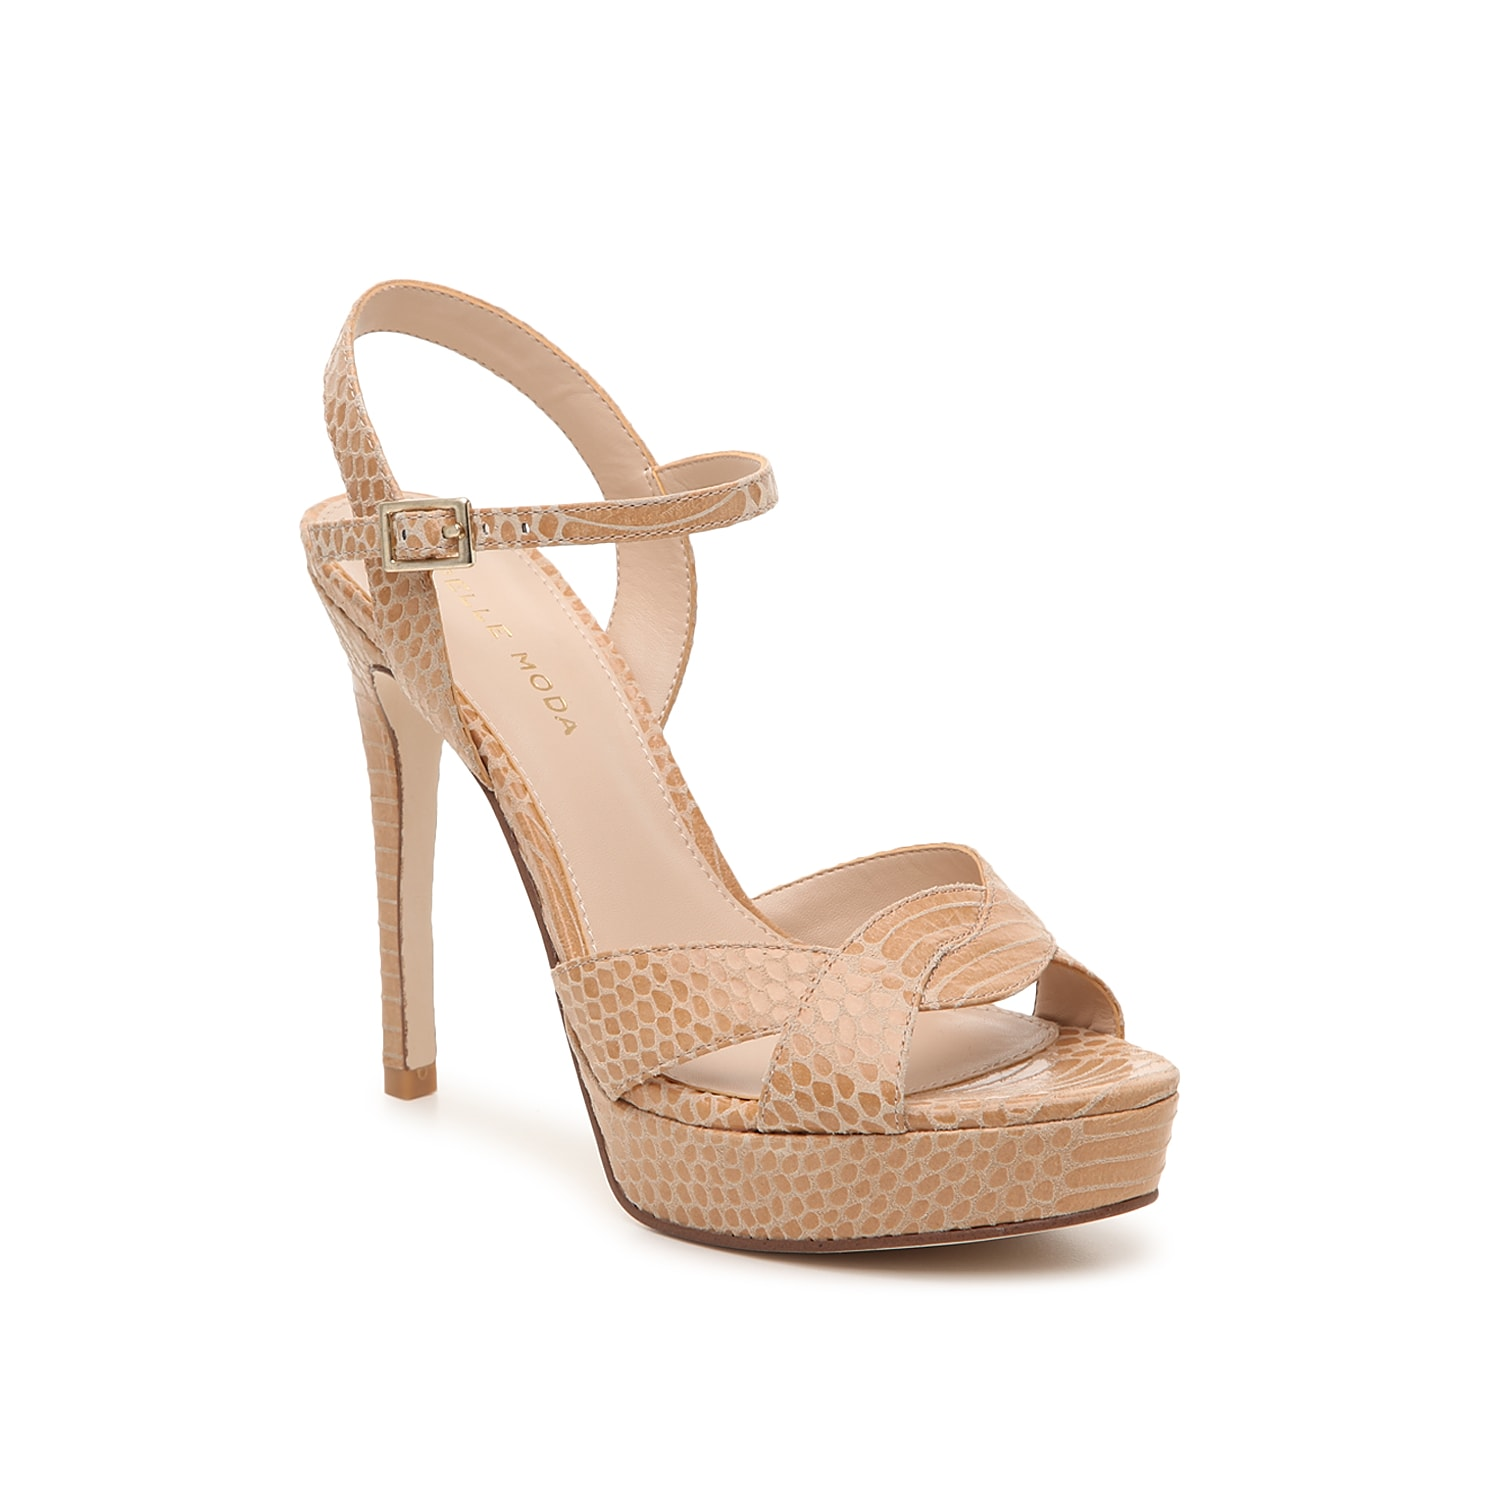 Reach new heights in the Danielle platform sandal from Pelle Moda. This silhouette is fashioned with a textural snake printed upper and a braided toe strap for extra allure!